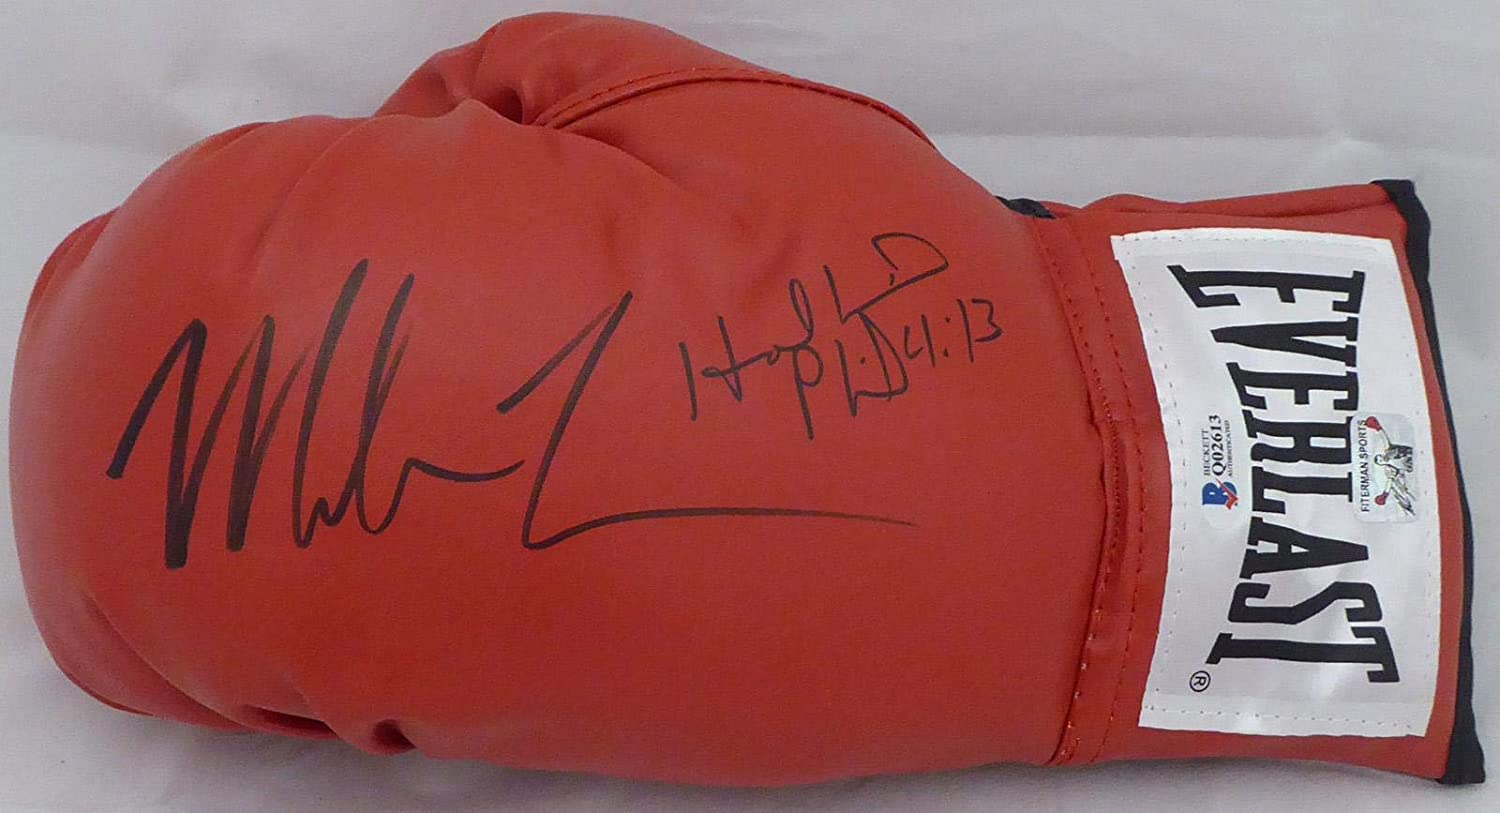 Mike Tyson /& Evander Holyfield Autographed Red Everlast Boxing Glove LH Signed In Black Beckett BAS Stock #155778 Beckett Authentication